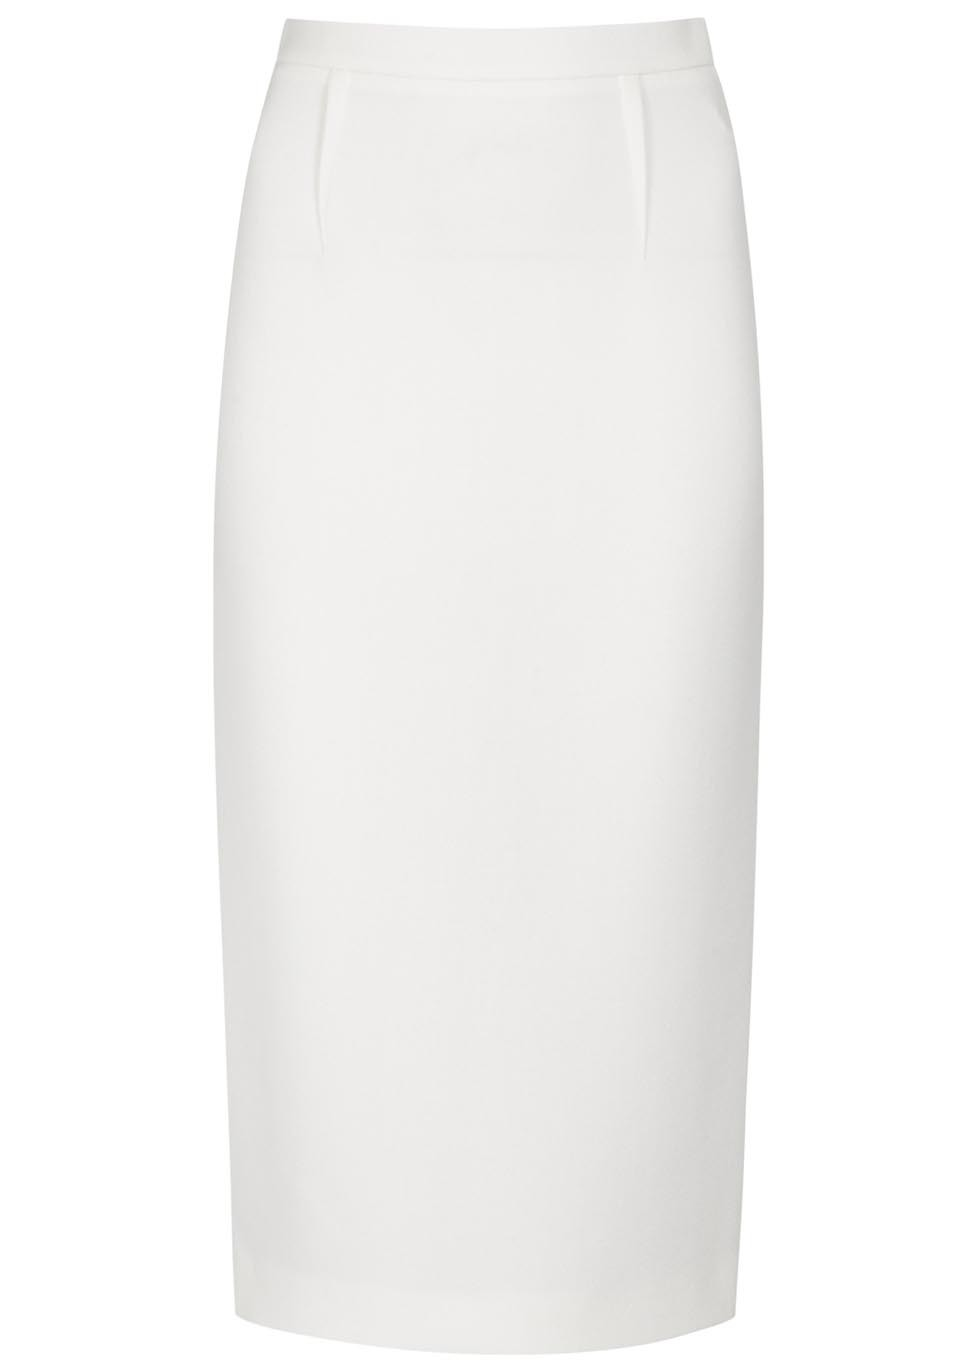 Arreton Ivory Wool Crepe Pencil Skirt - length: below the knee; pattern: plain; style: pencil; fit: tailored/fitted; waist: high rise; predominant colour: white; occasions: evening; fibres: wool - 100%; pattern type: fabric; texture group: woven light midweight; season: a/w 2015